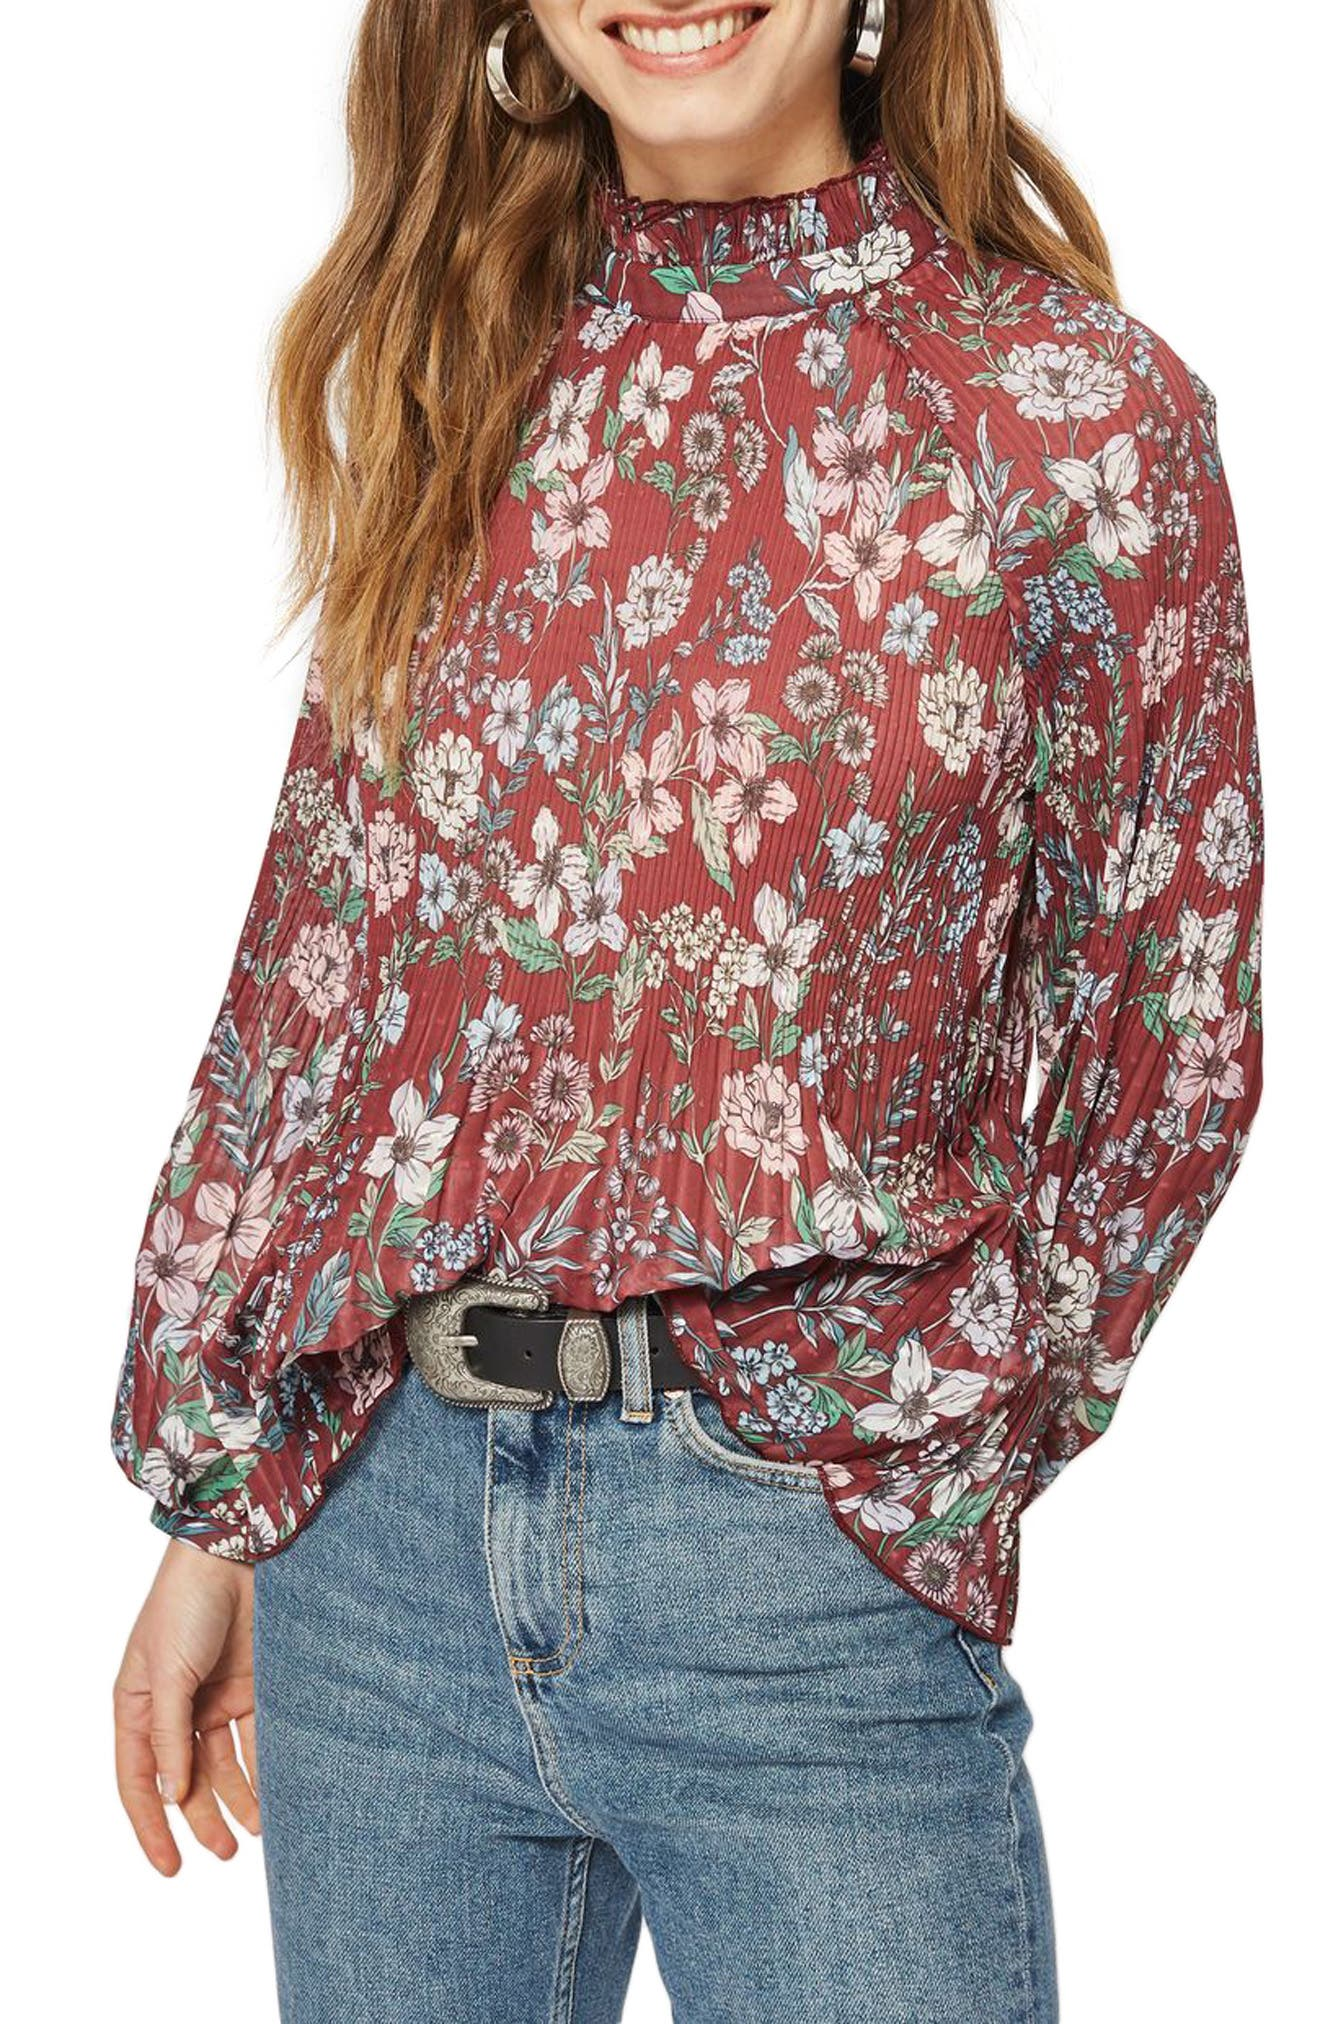 Topshop Floral Pleat Tunic Blouse